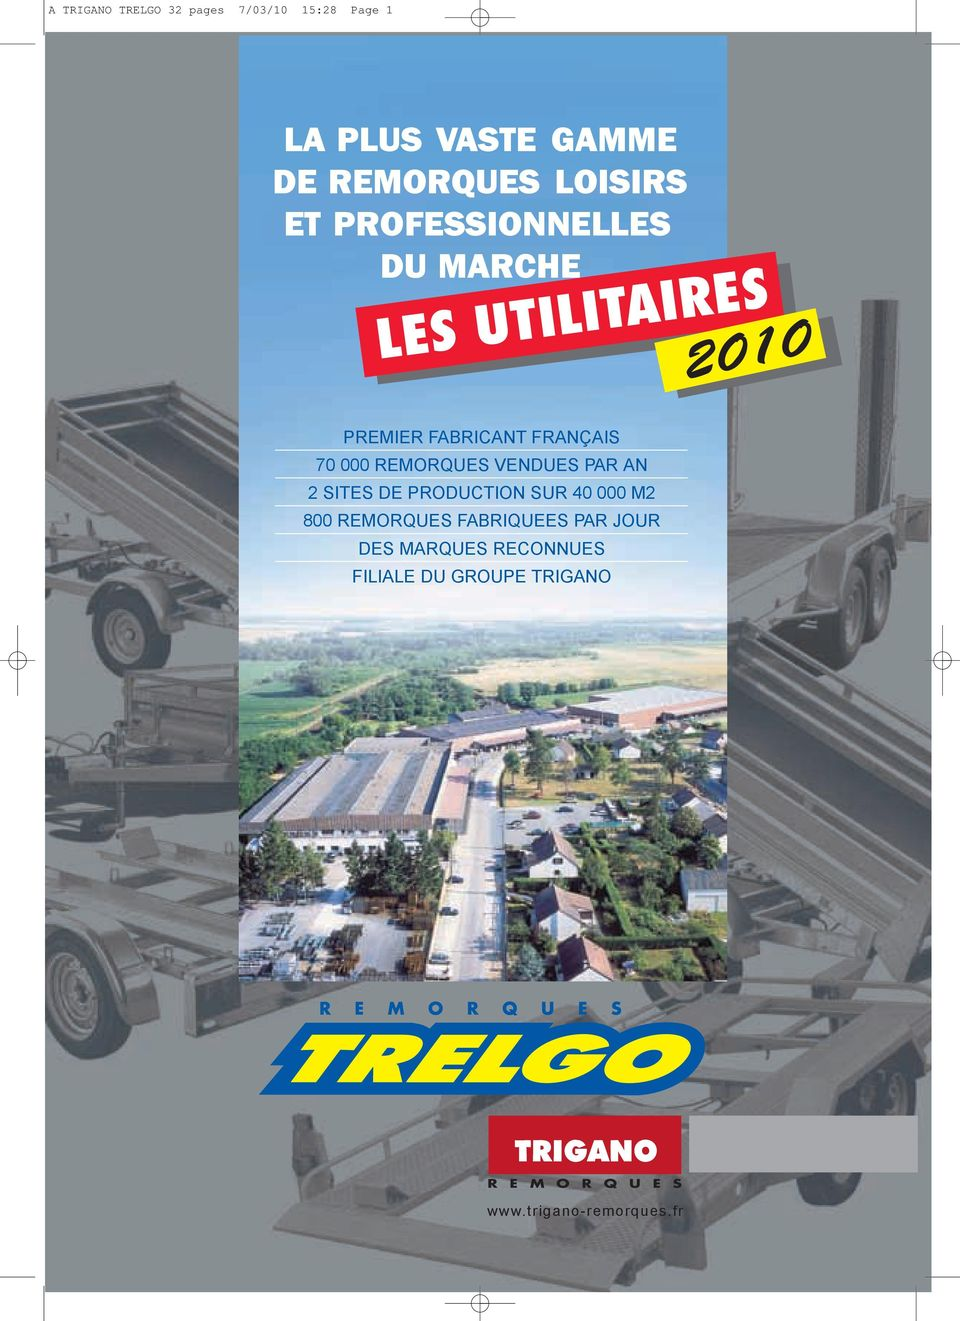 70 000 VENDUES PAR AN 2 SITES DE PRODUCTION SUR 40 000 M2 800 FABRIQUEES PAR